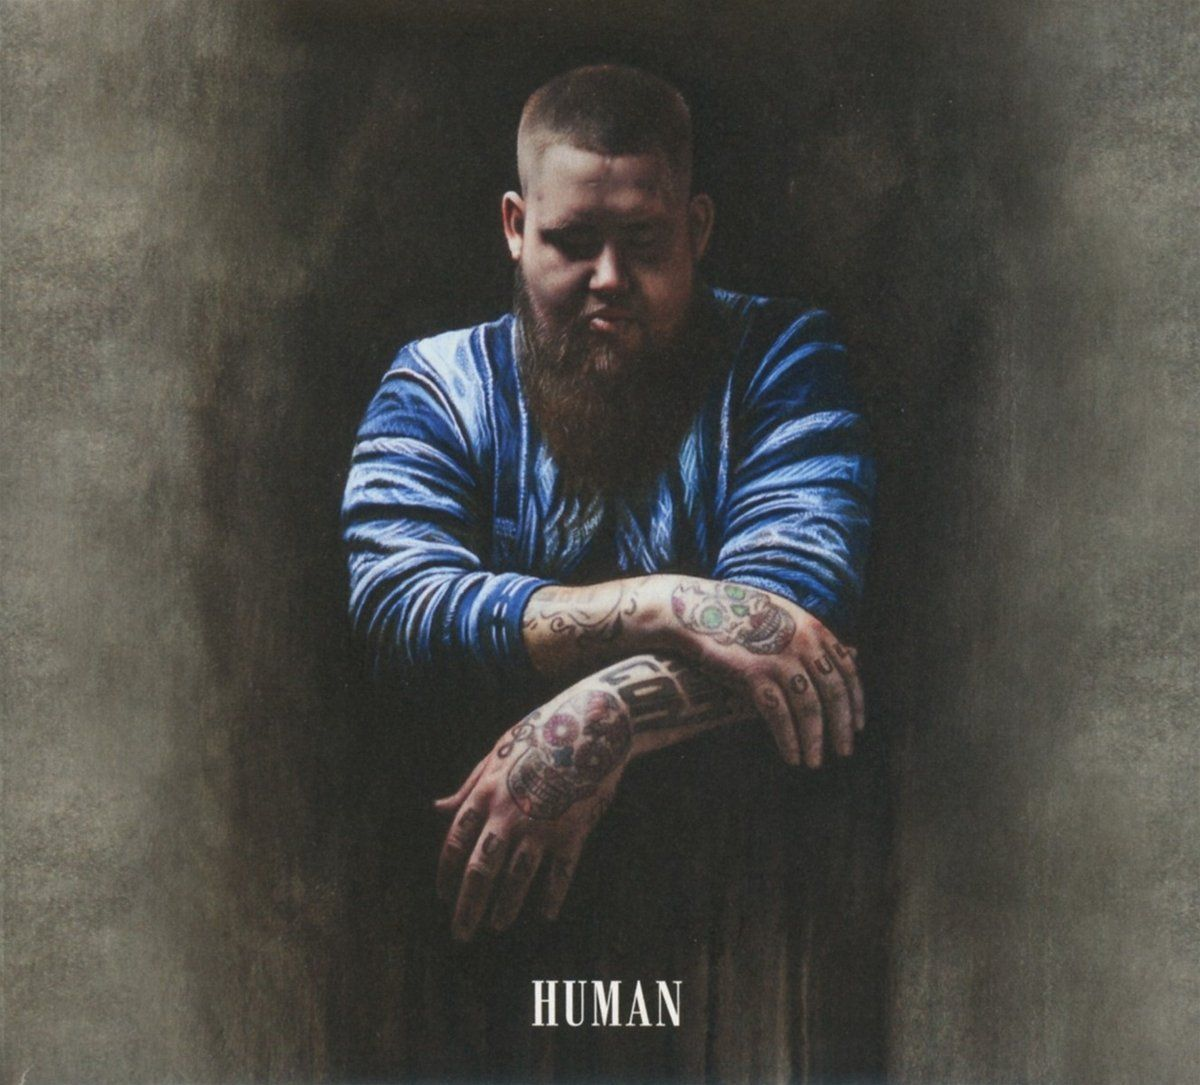 Rag 'N' Bone Man - Human album cover